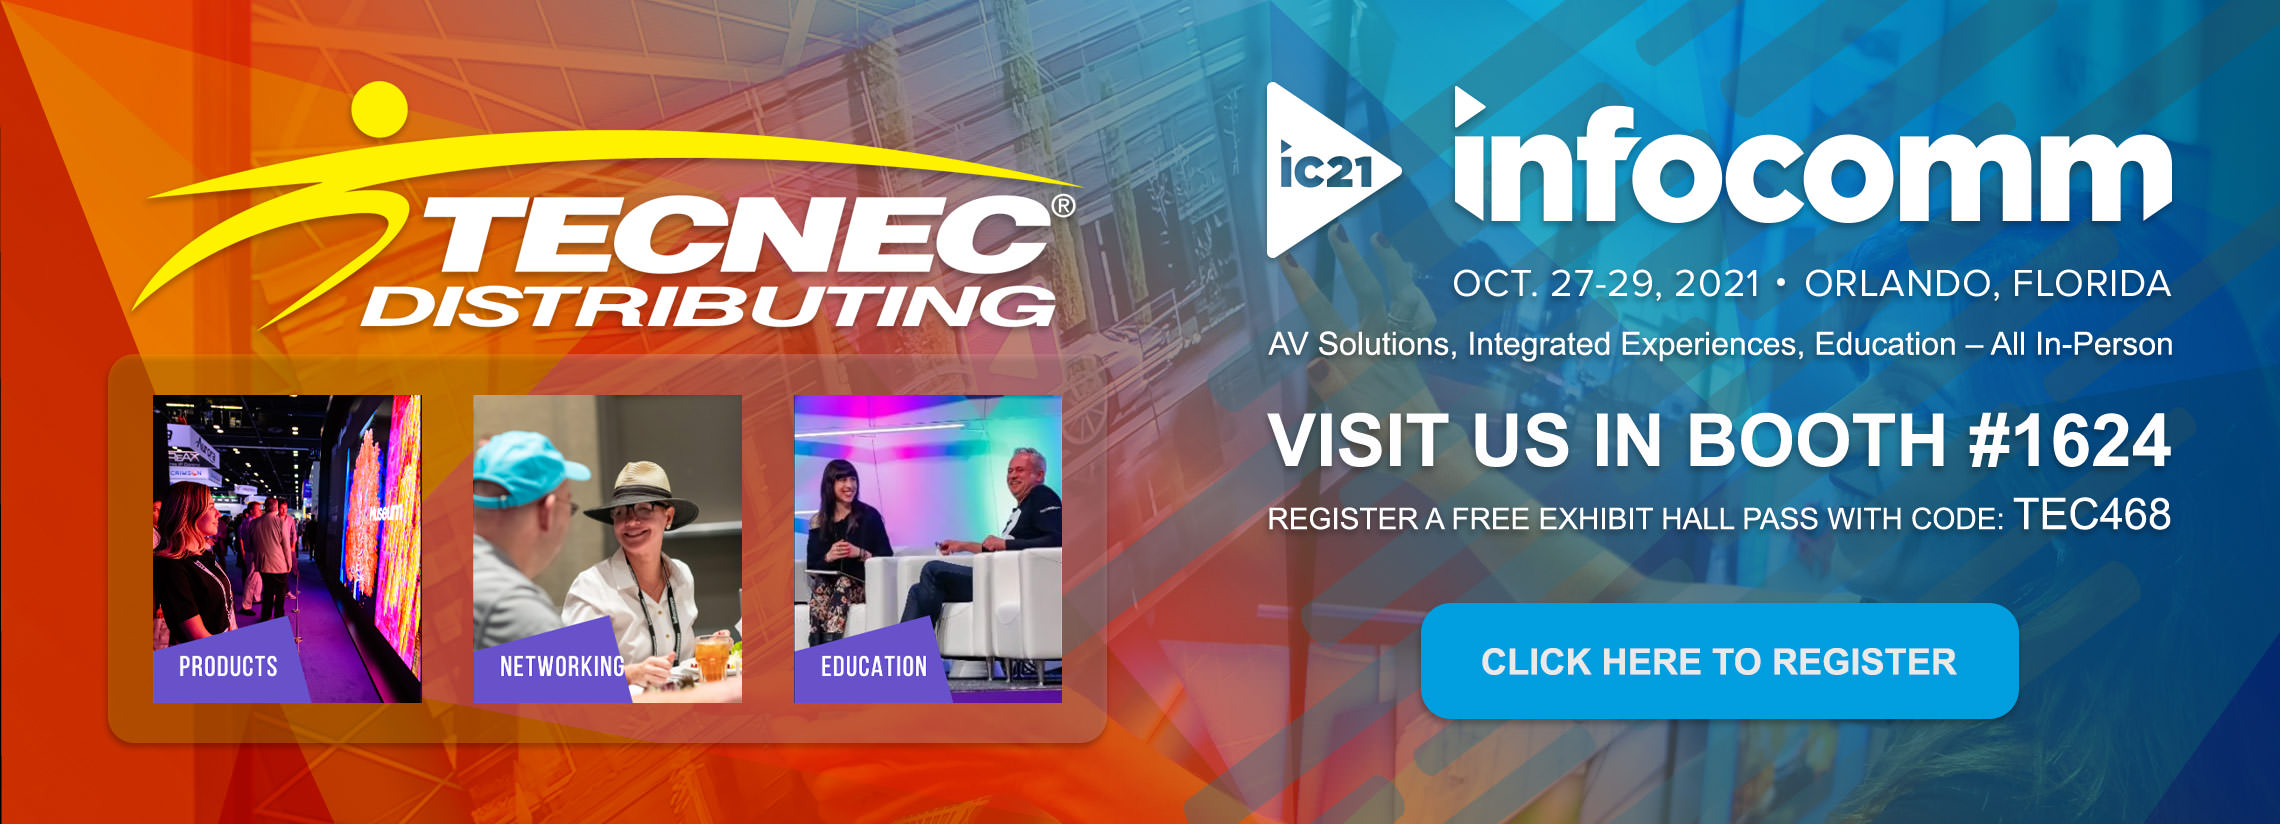 join tecnec with a free pass to infocomm 2021